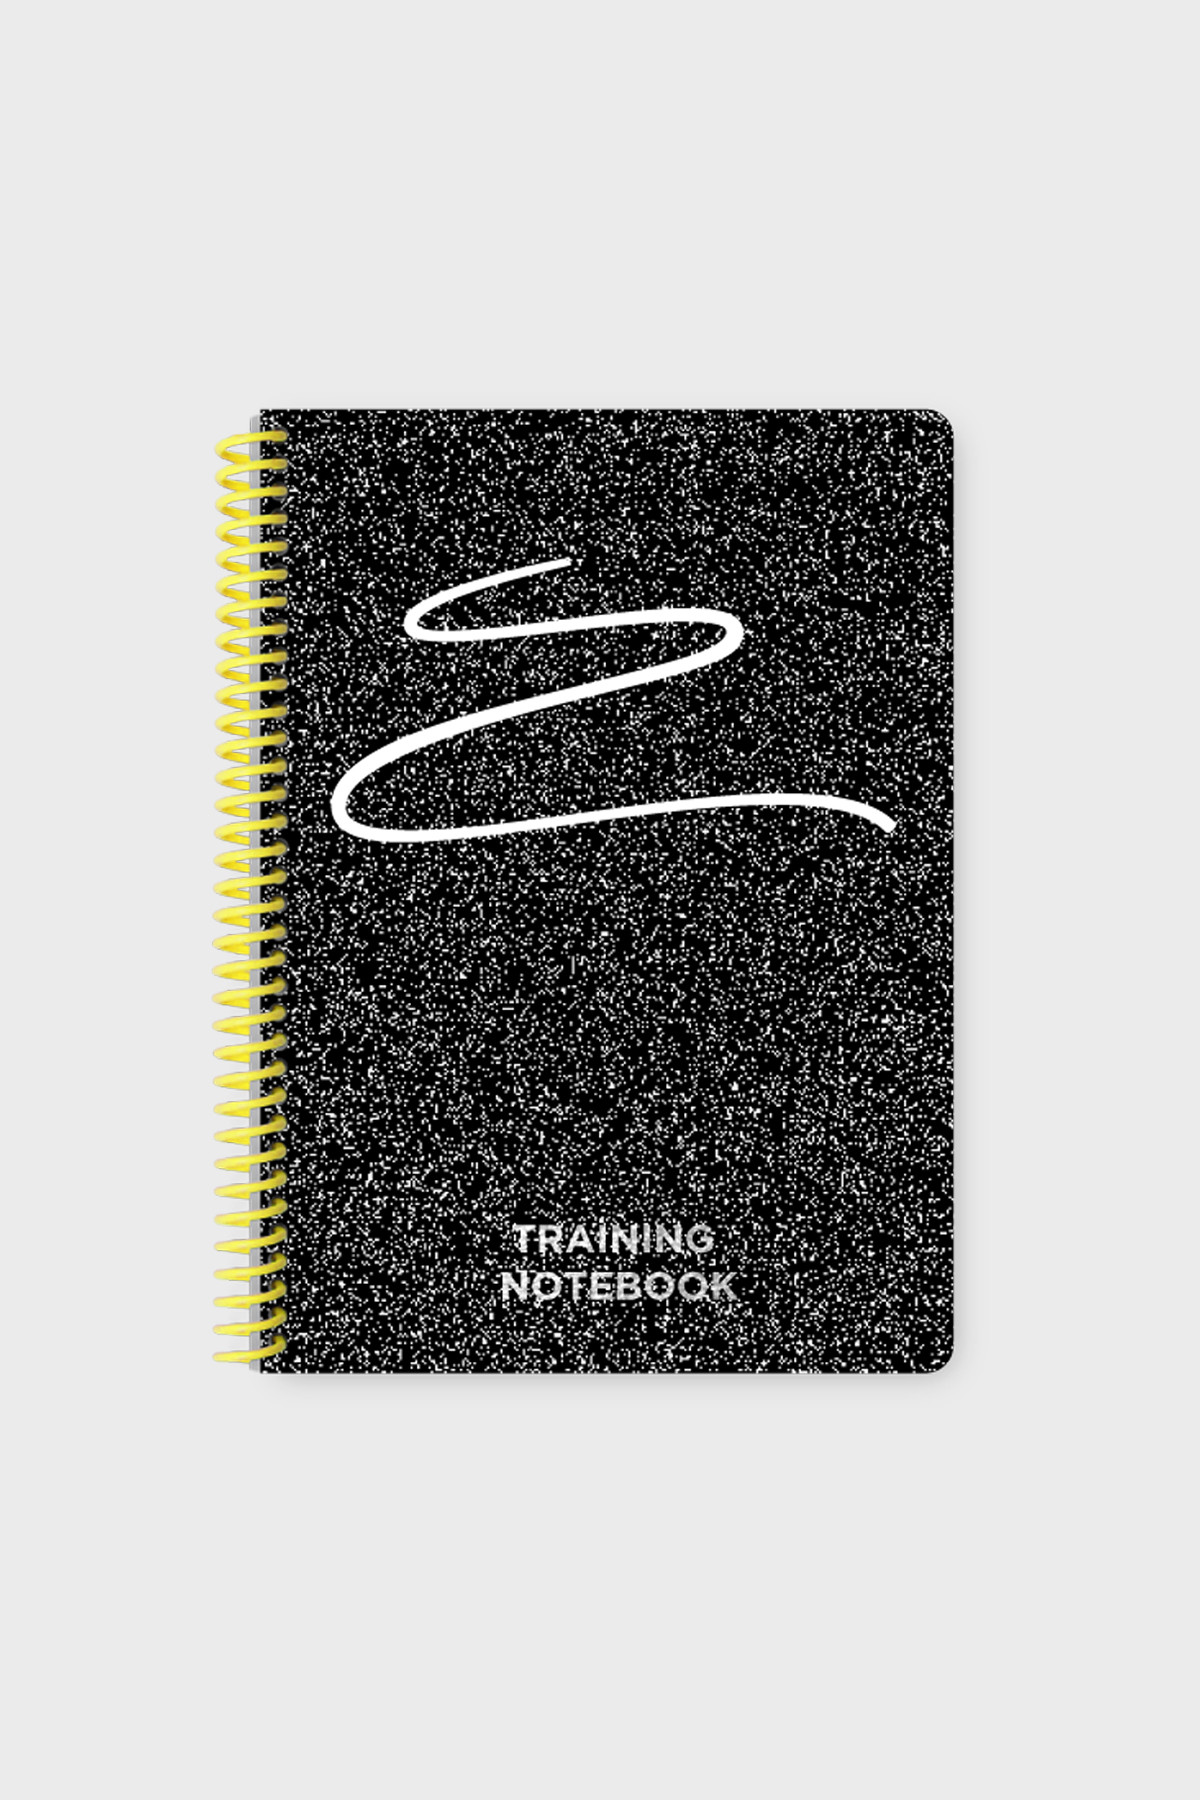 Distance x Papier Tigre - Training Notebook - #1